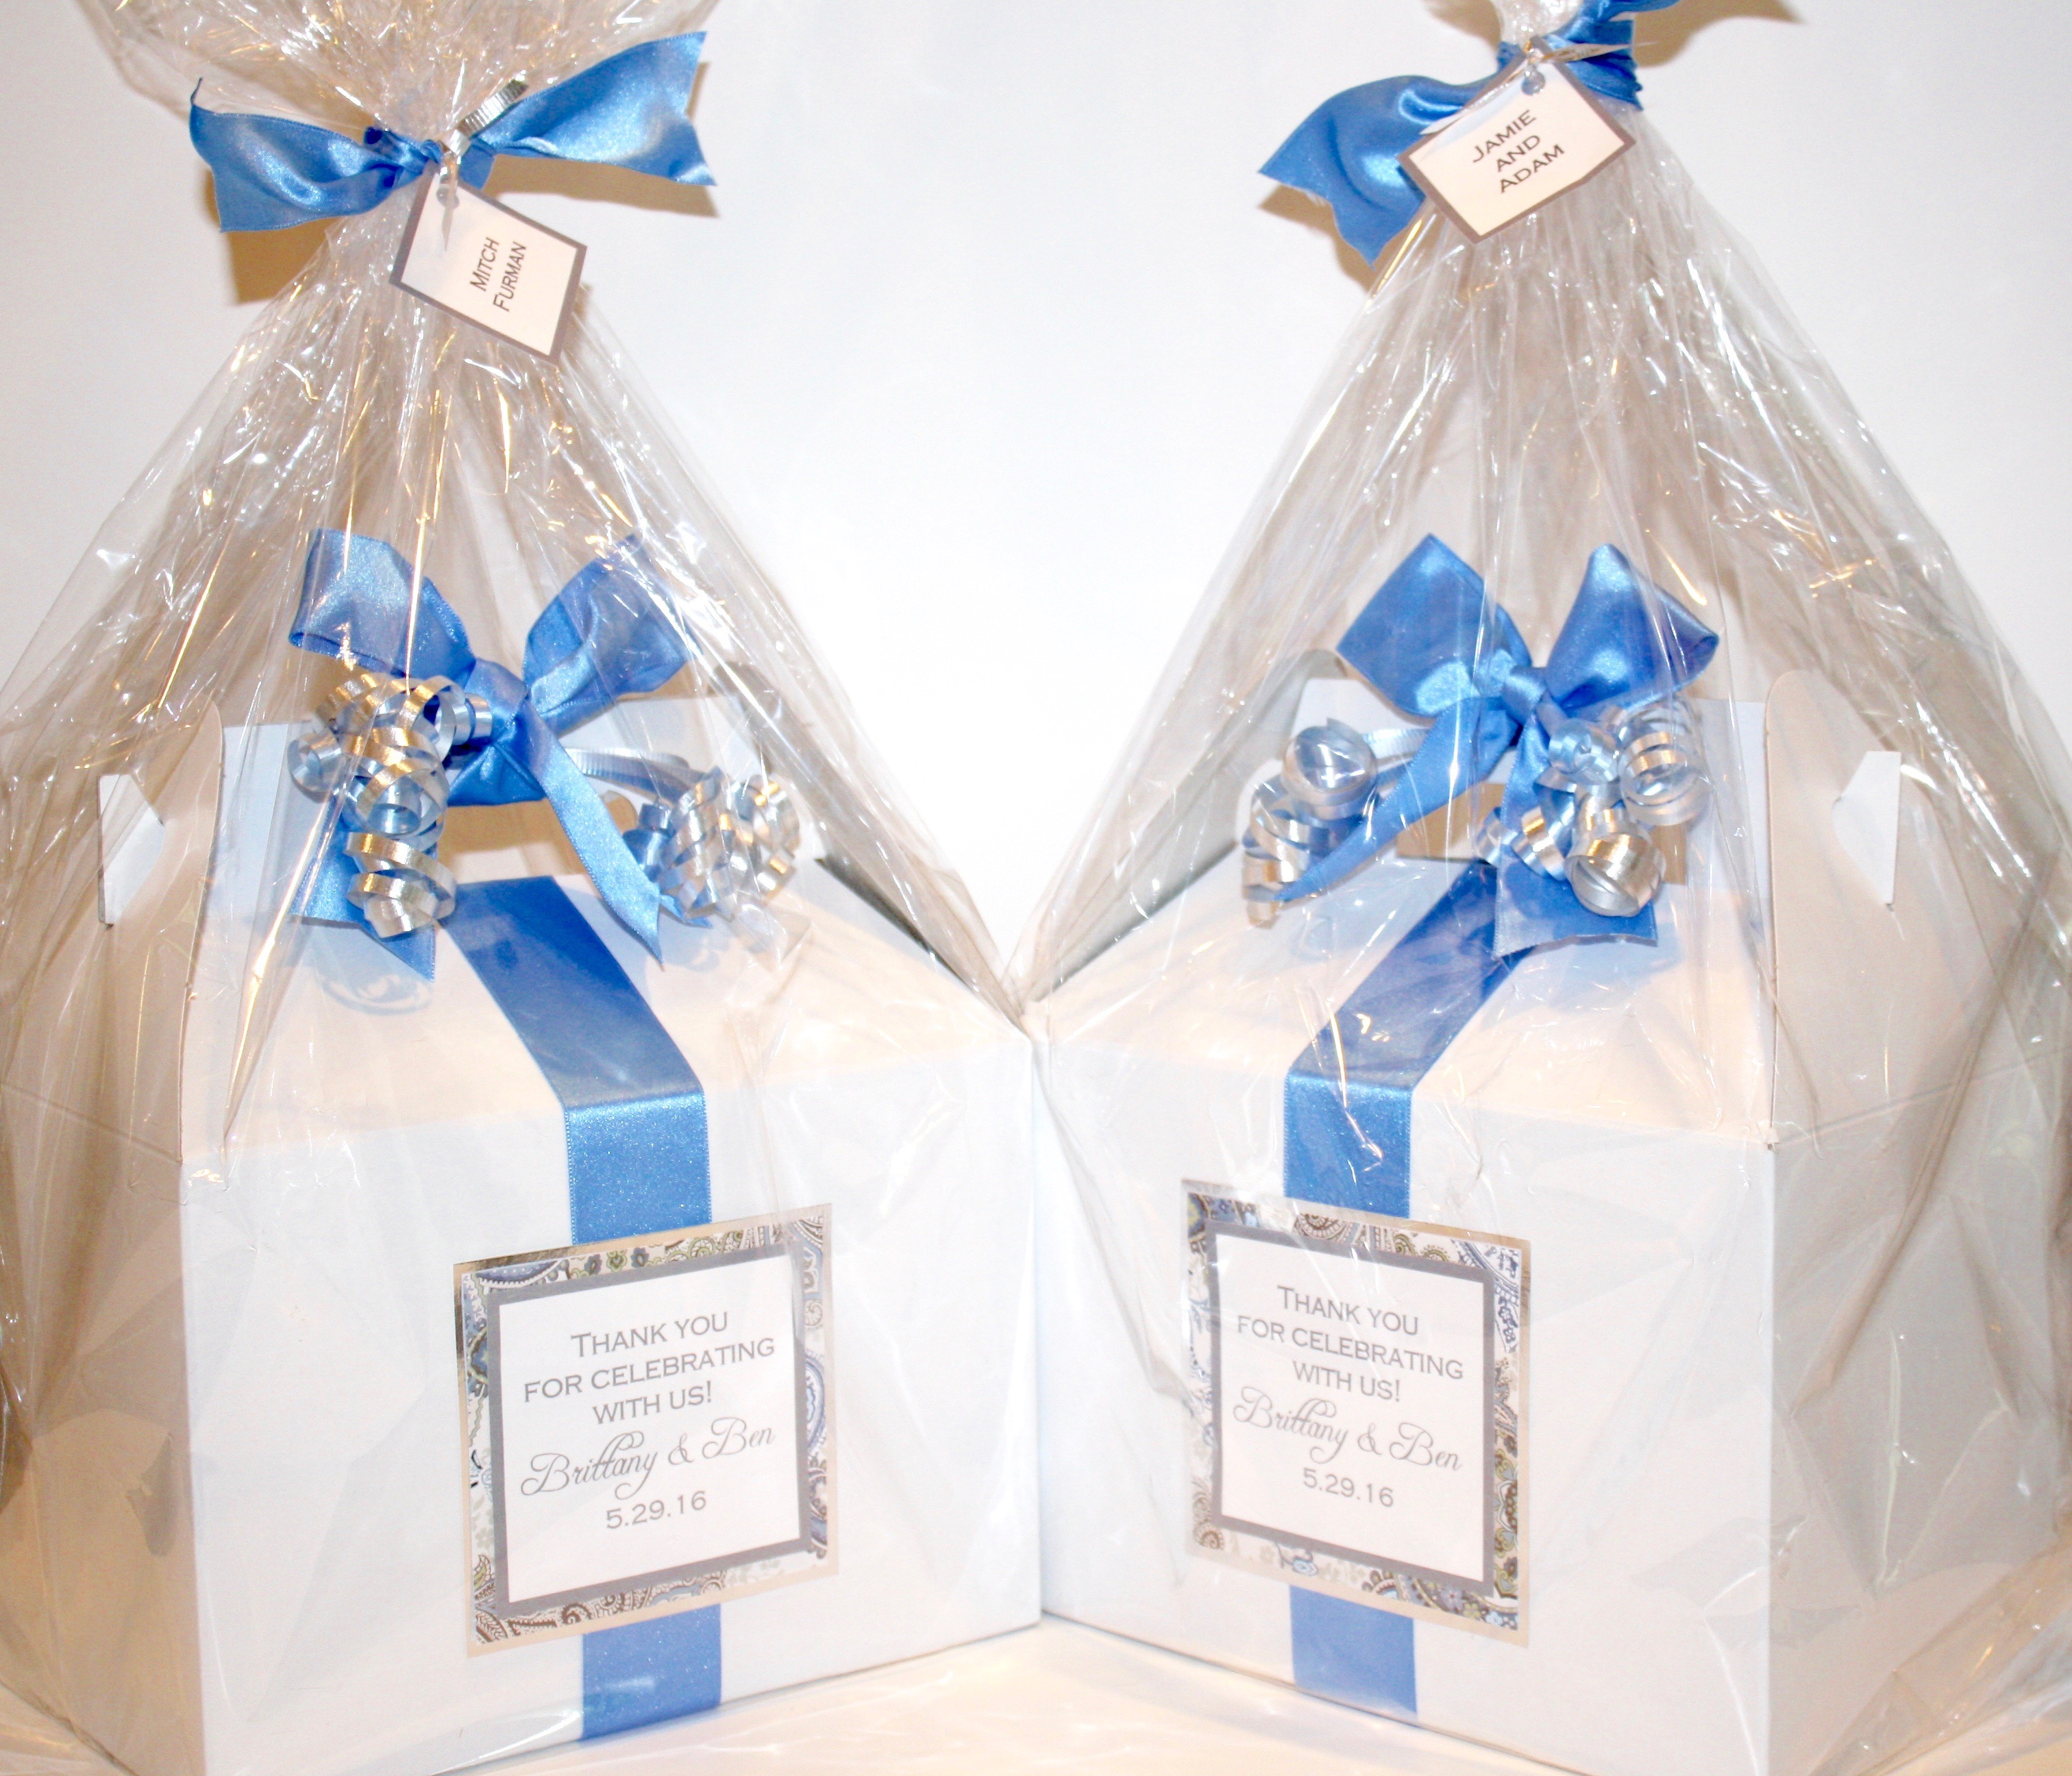 Weddings & Bar/Bat Mitzvah Photos – Goodies for Guests